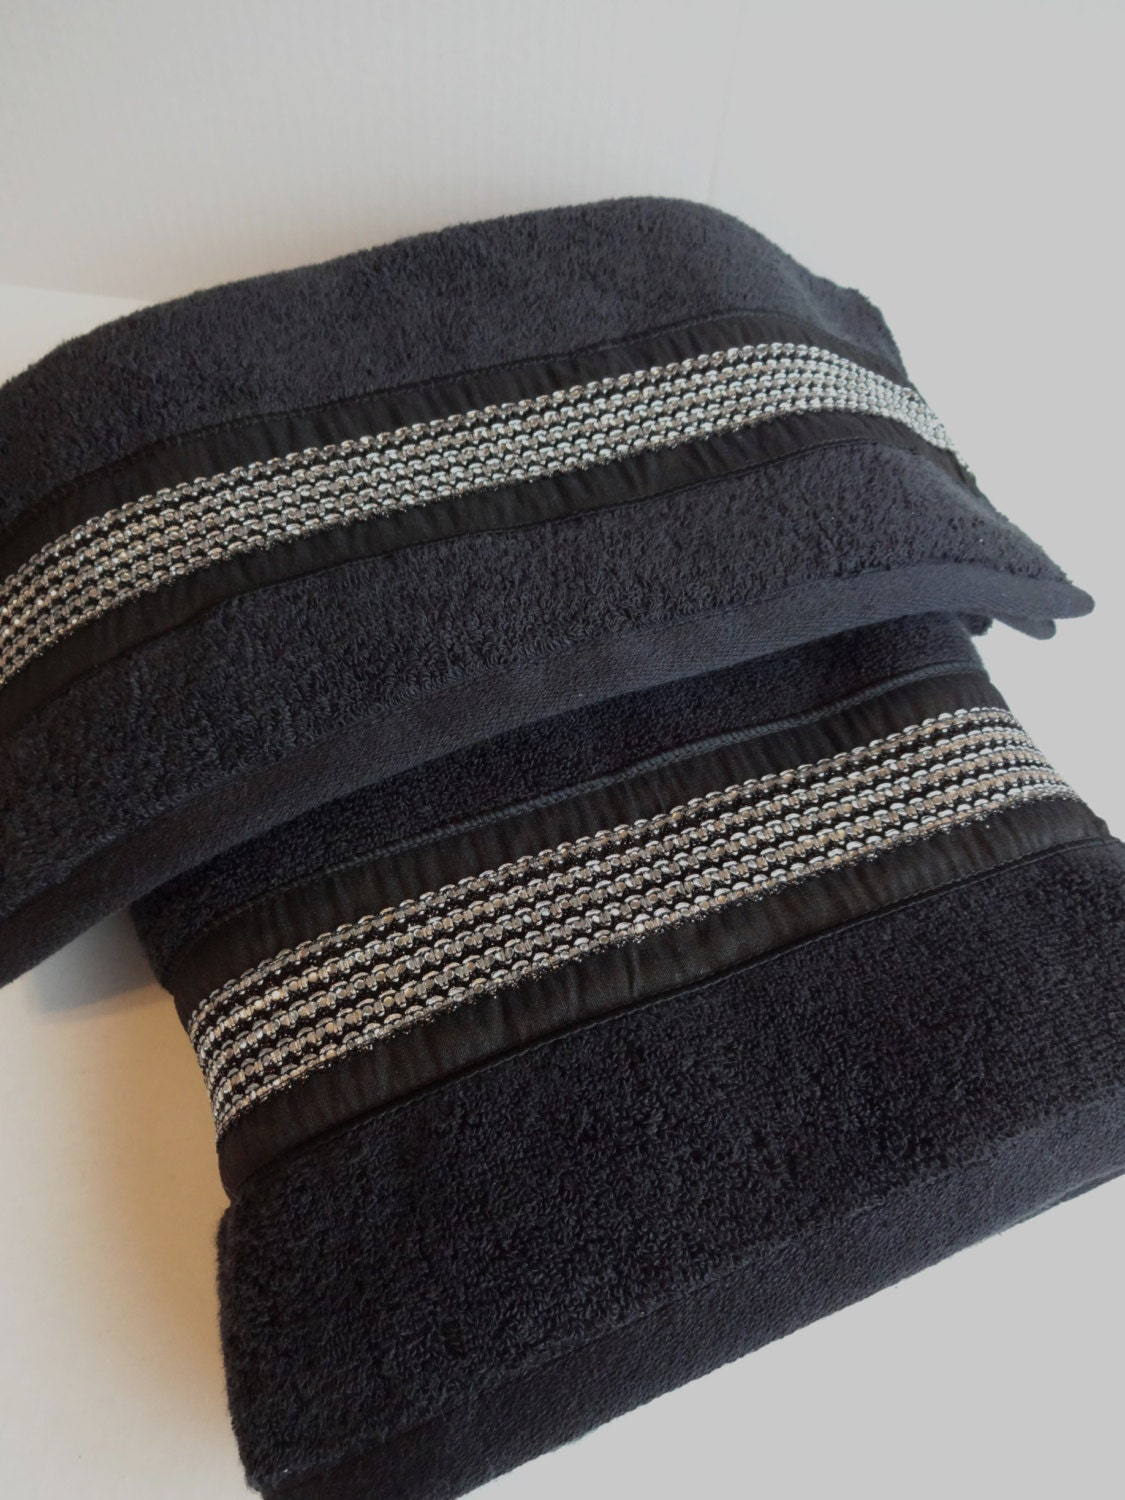 Pick Your Size Bling Towels Black Towels Bling Rhinestone